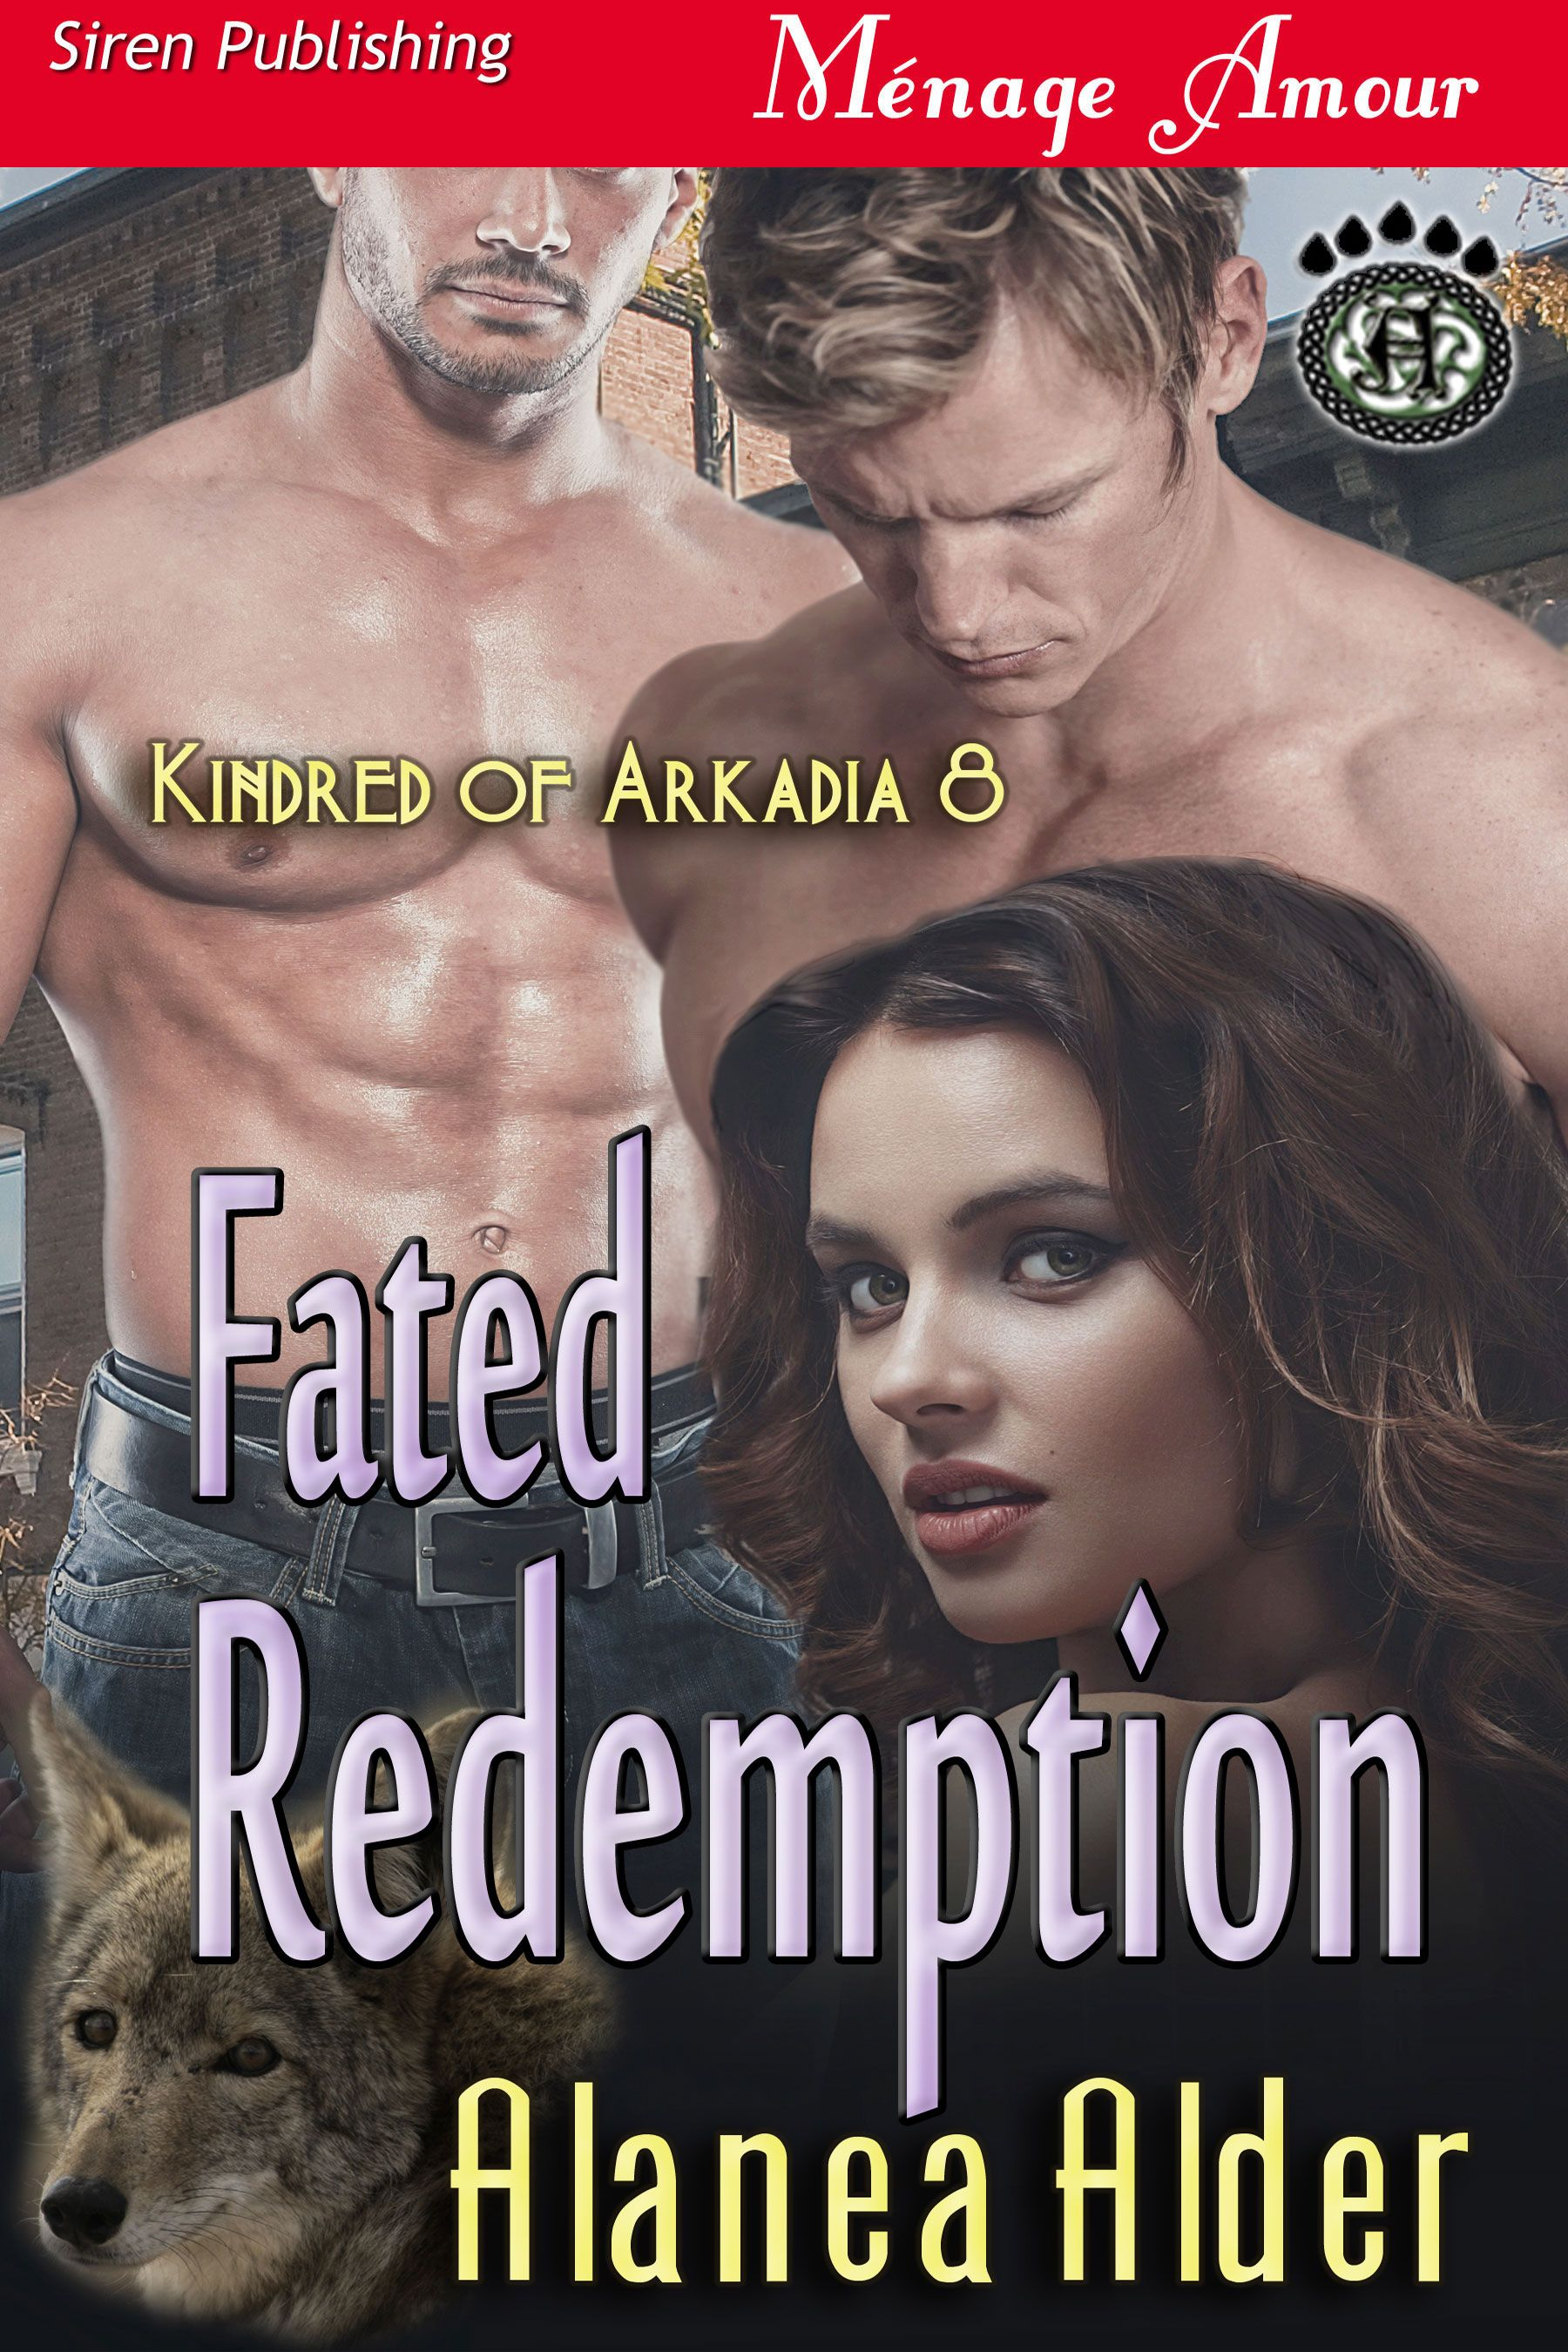 Pin By Alanea Alder On Kindred Of Arkadia Book Covers